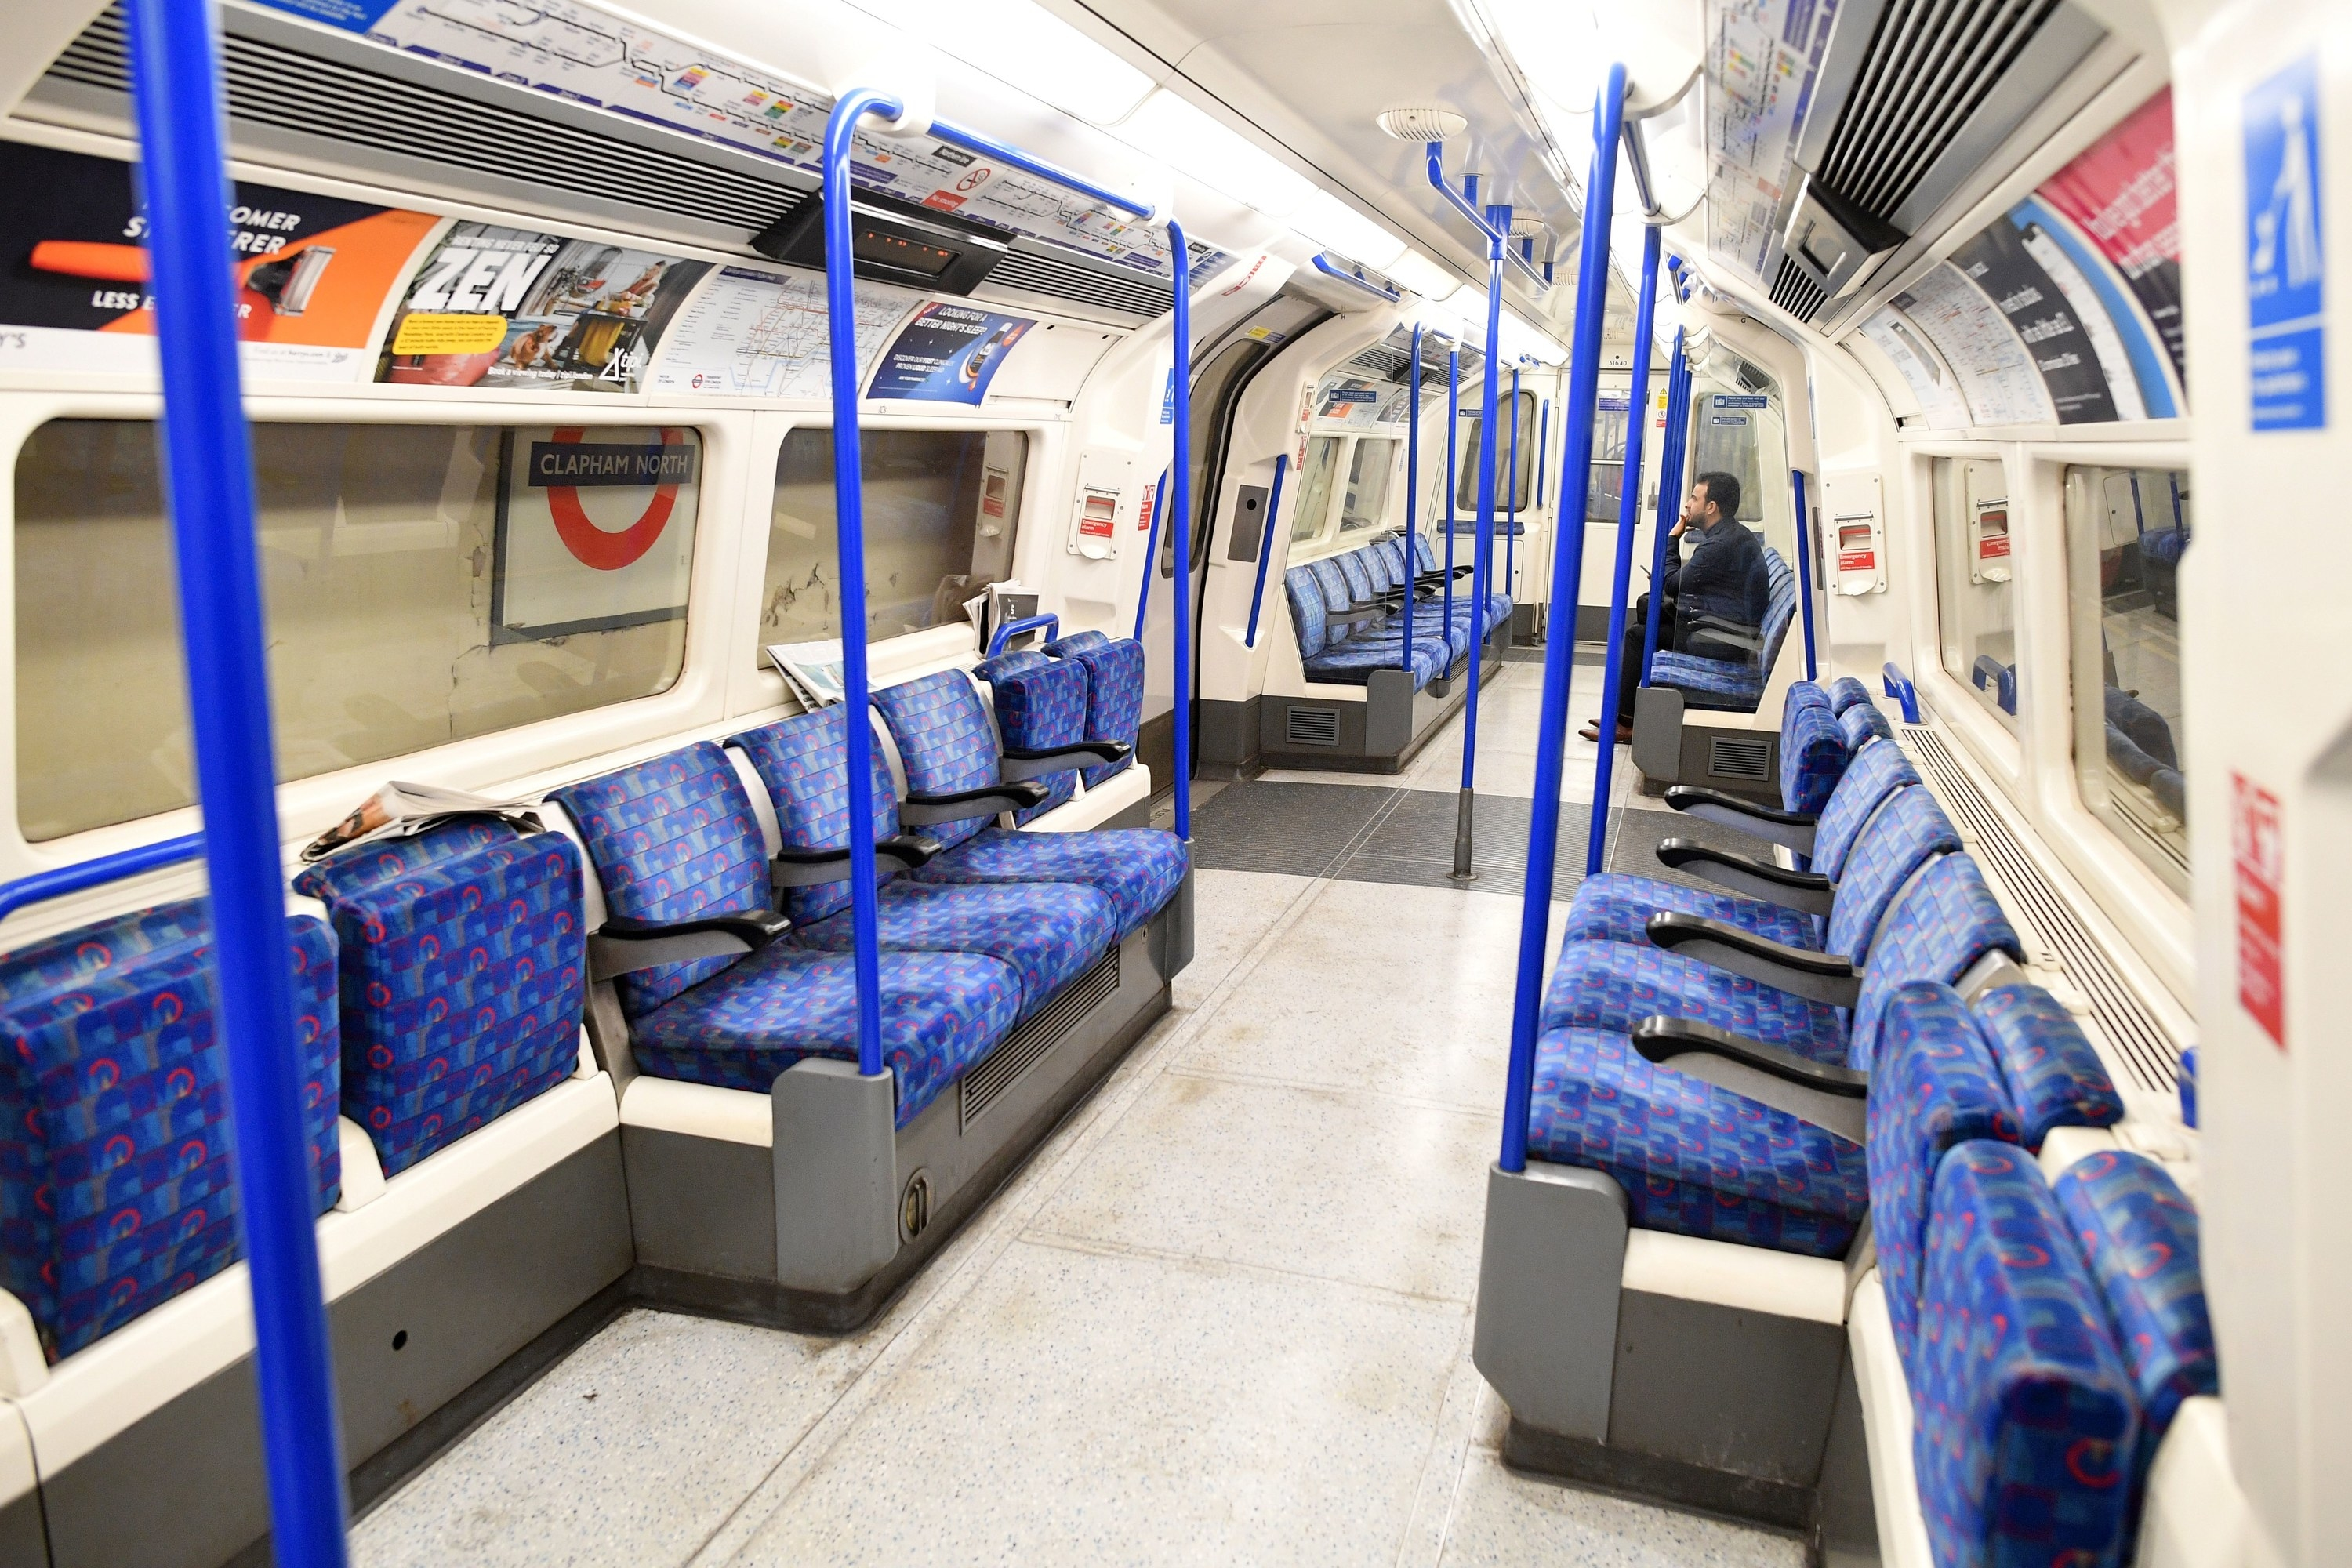 Few commuters travel on the train during the morning rush hour time at 0830 from Clapham North to central London on March 17.